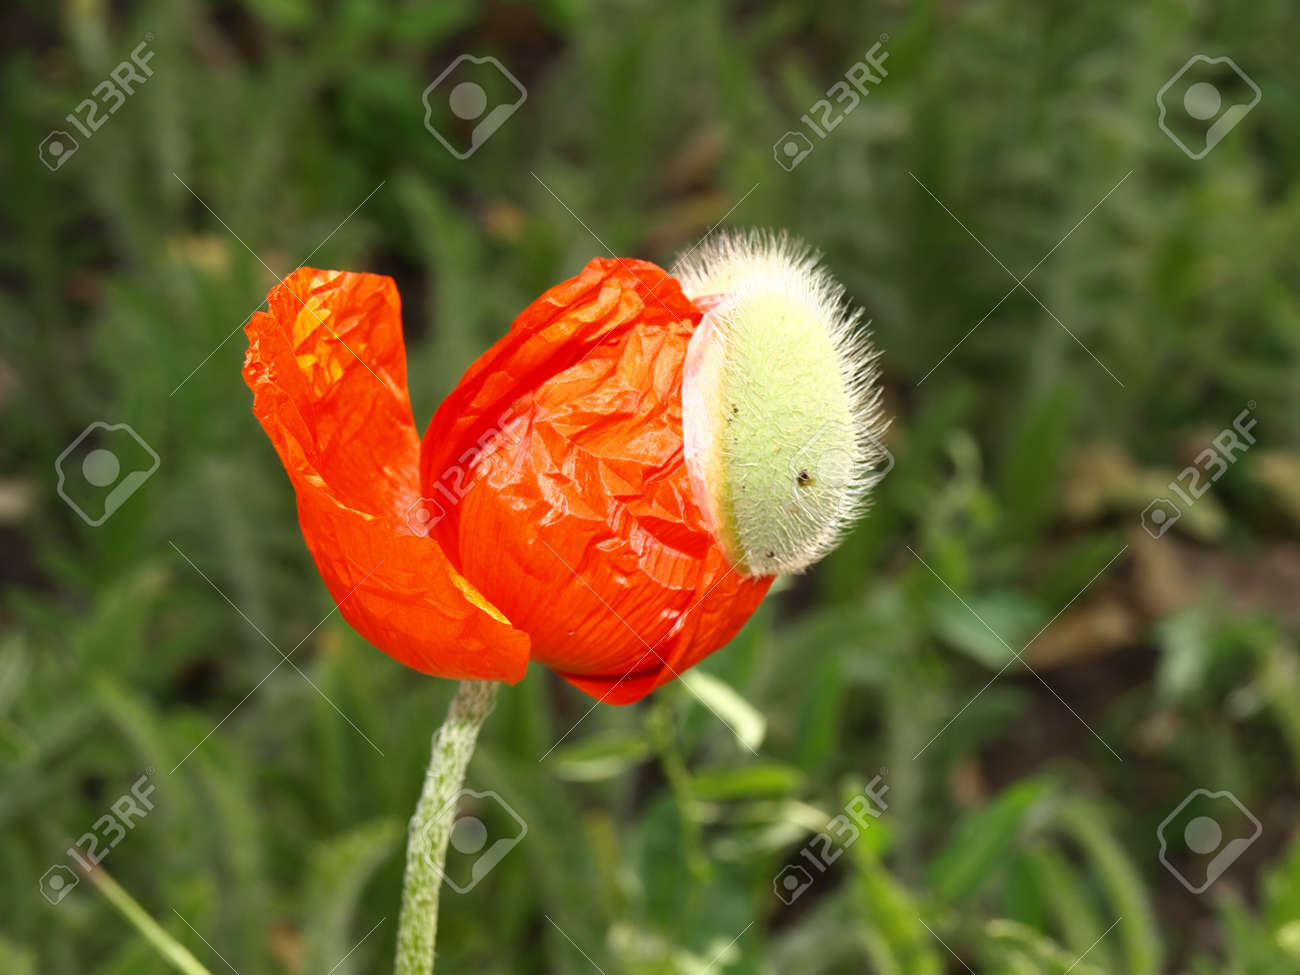 Birth Of Poppy Flower The First Day Of Flowering Stock Photo